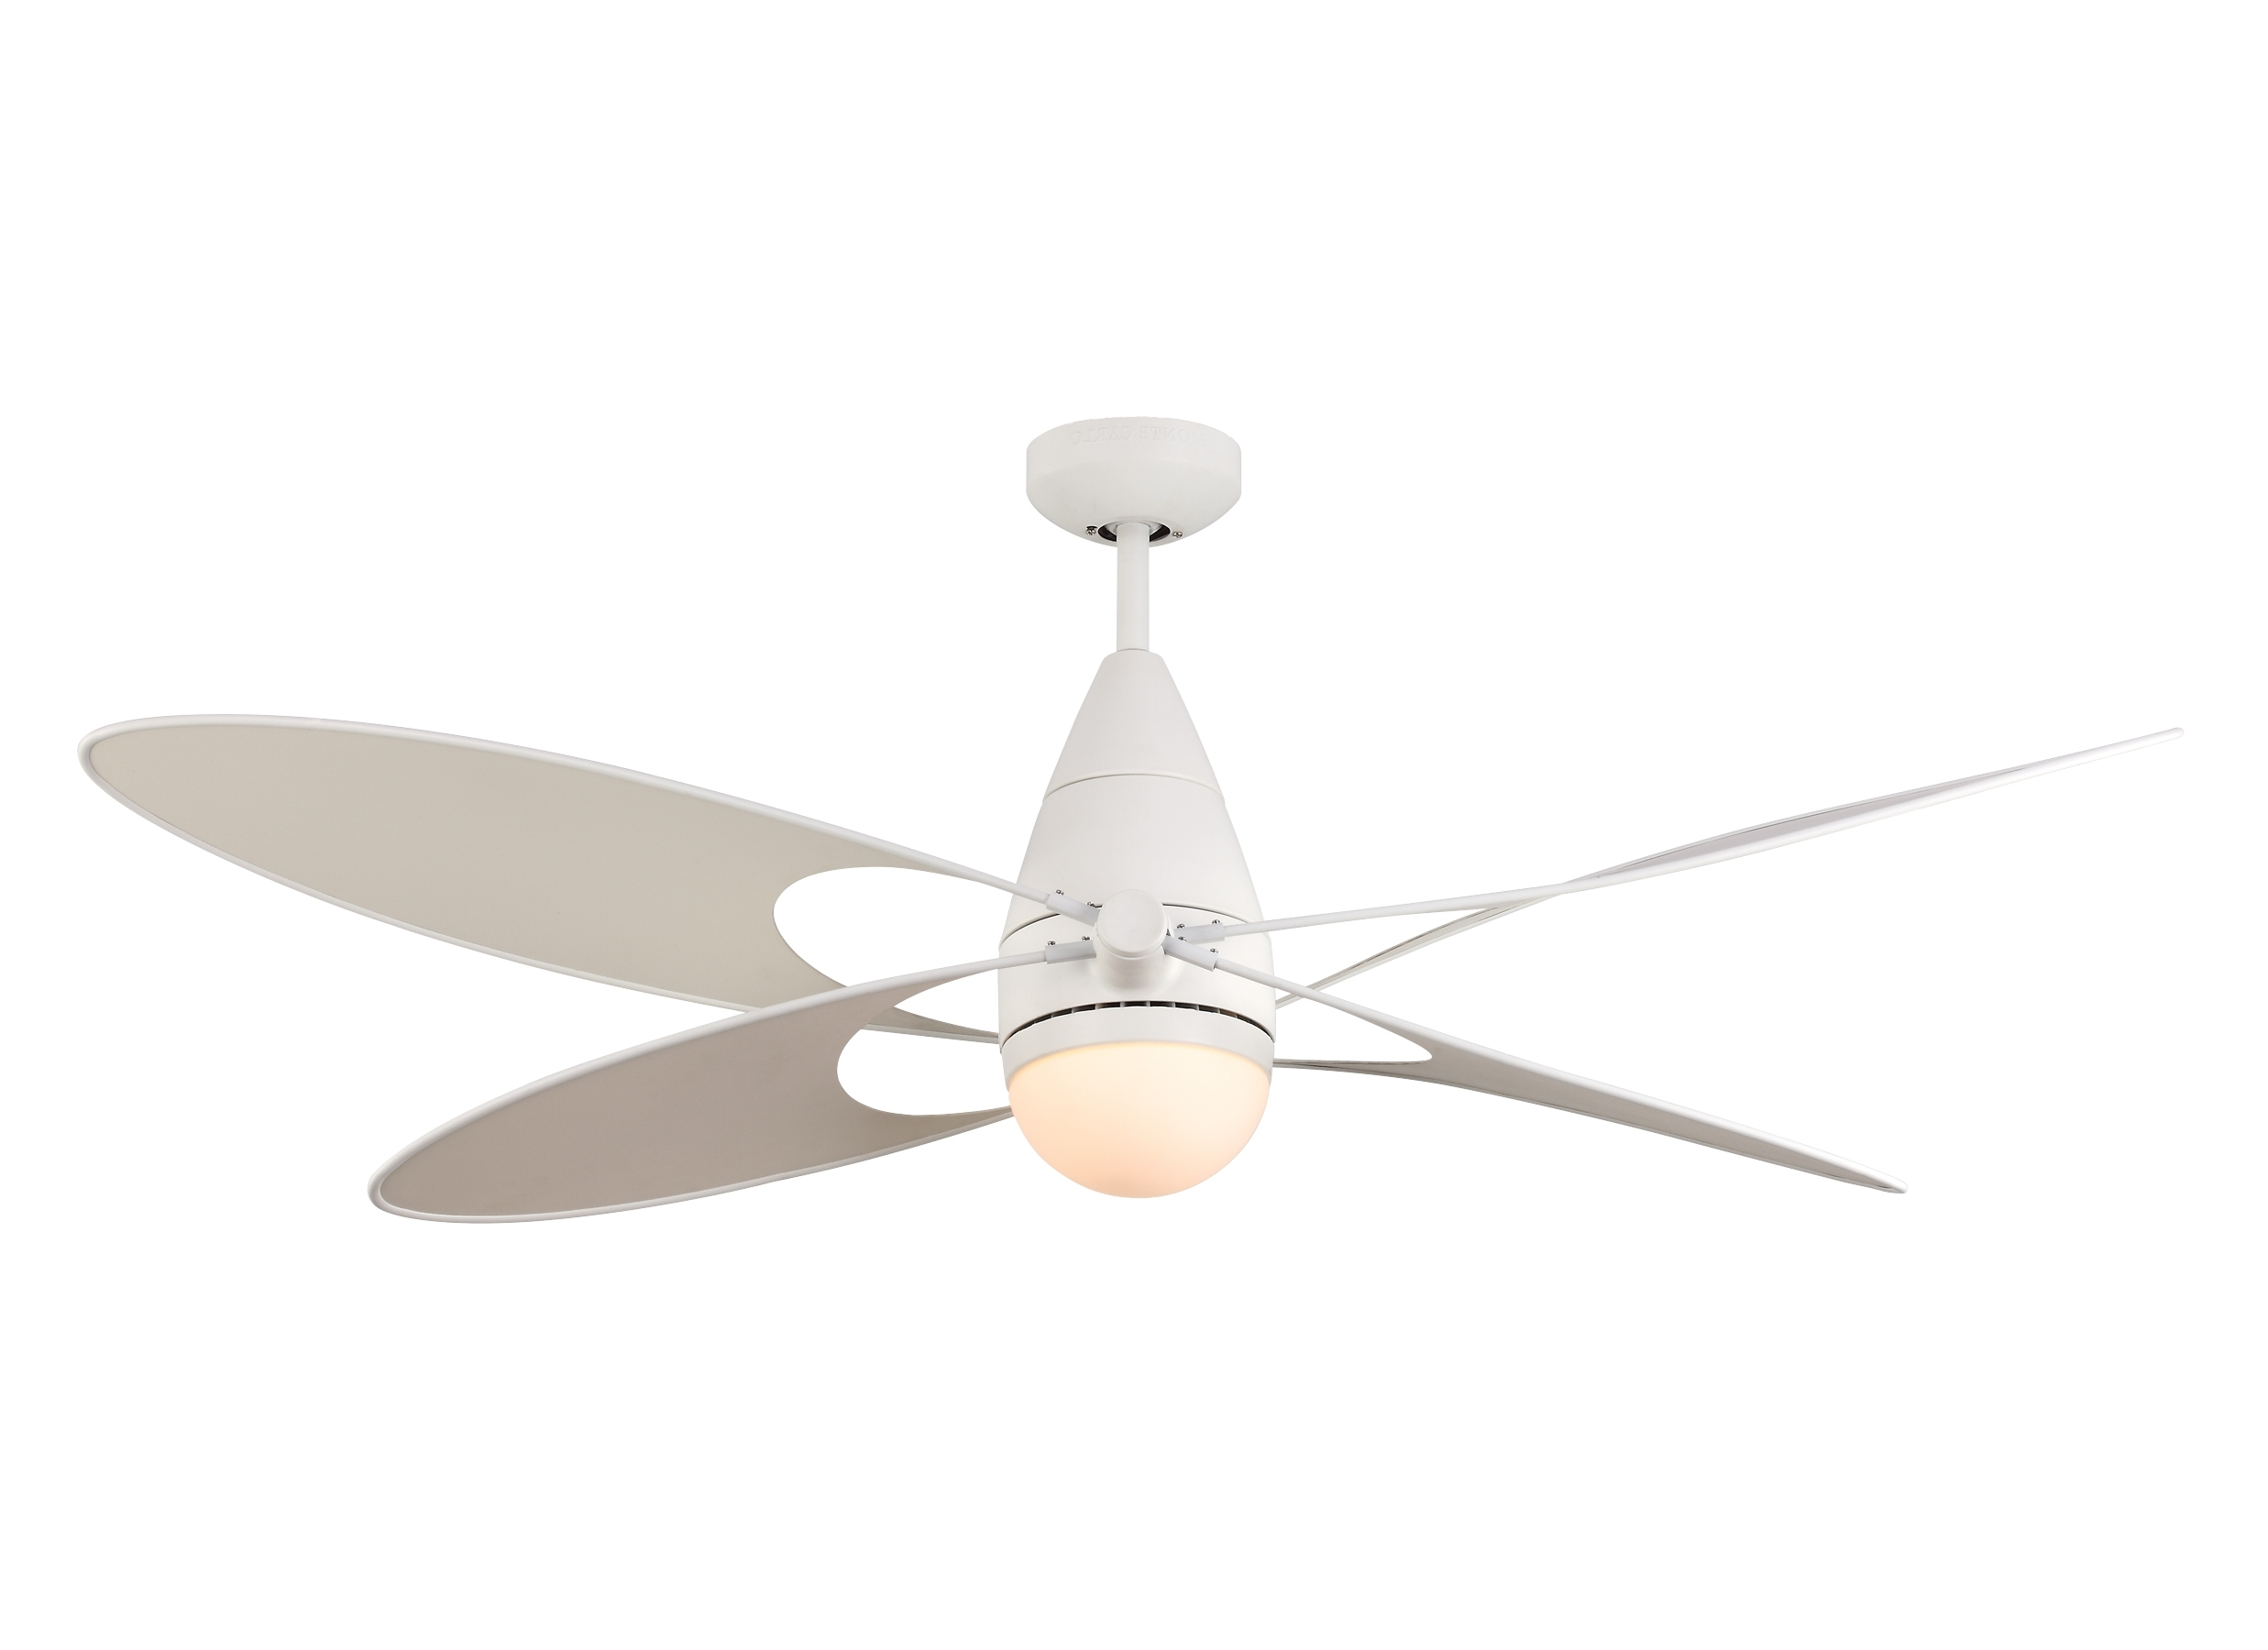 Lamps: Exciting Menards Ceiling Fans For Best Ceiling Fan Inside 2018 Outdoor Ceiling Fans At Menards (View 9 of 20)